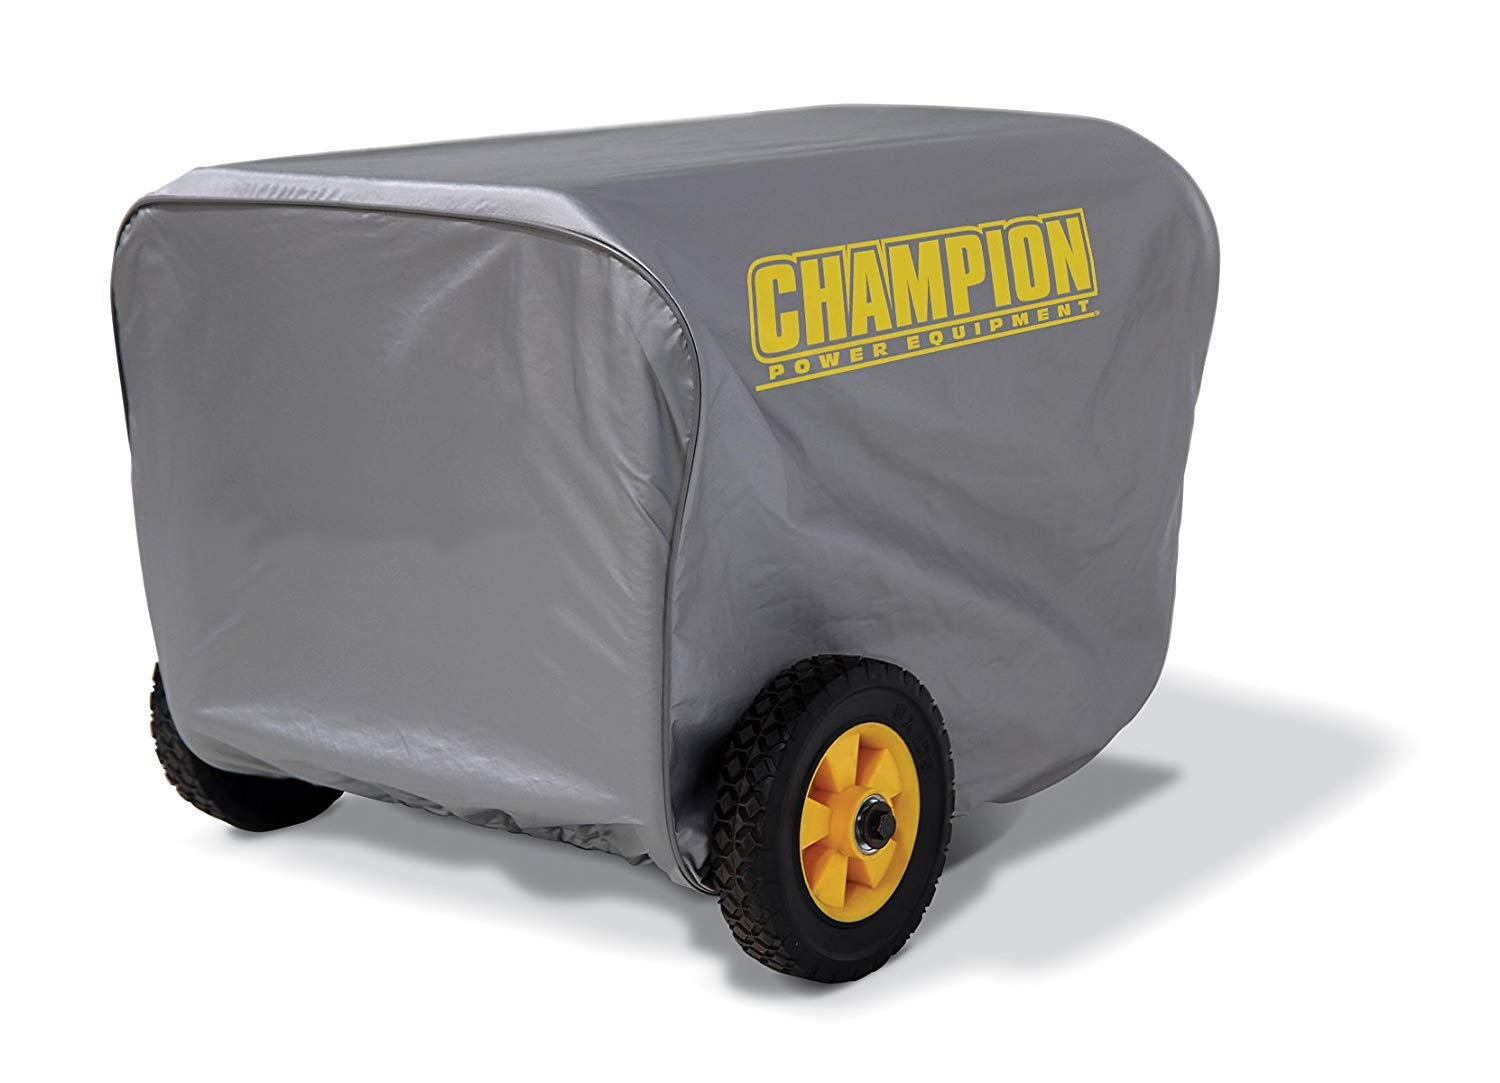 Weather-Resistant Storage Cover for 2800-4750-Watt Portable Generators by ChampionPowerEquipmen